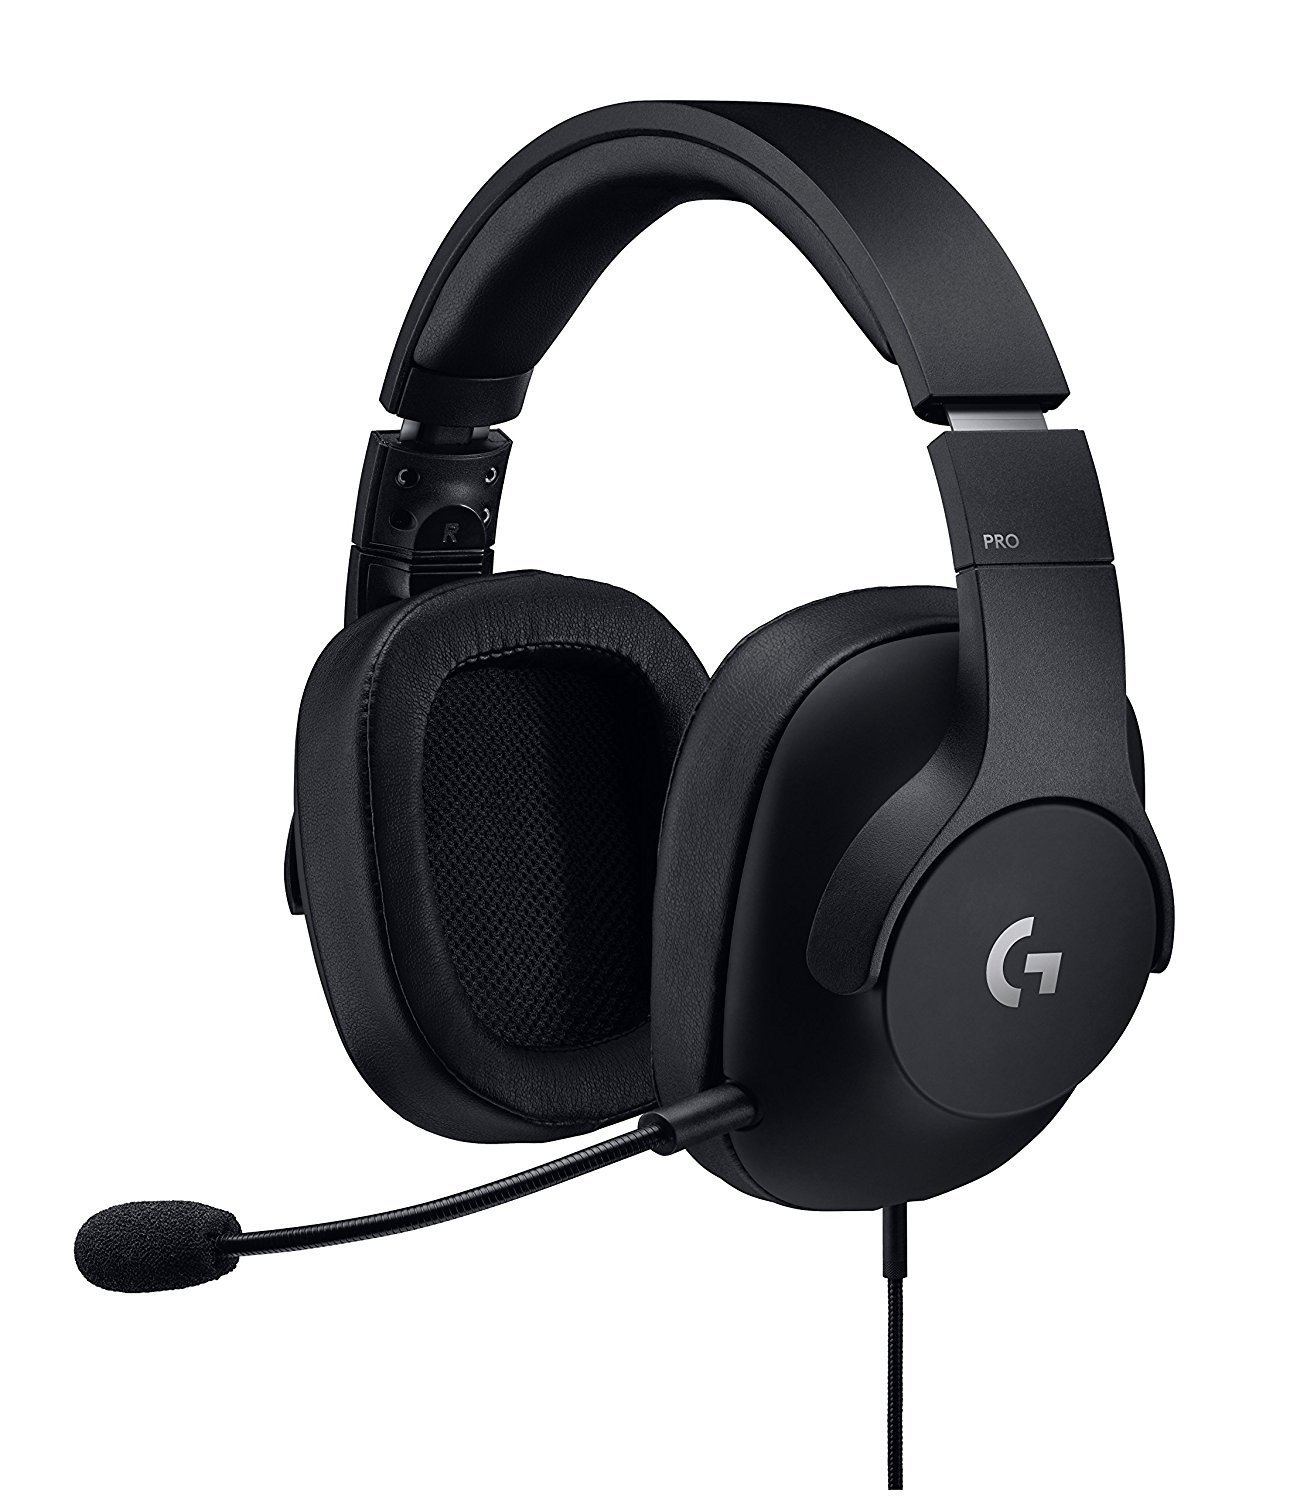 Logitech G Pro Gaming Headset Review - Great for Competitive Gamers